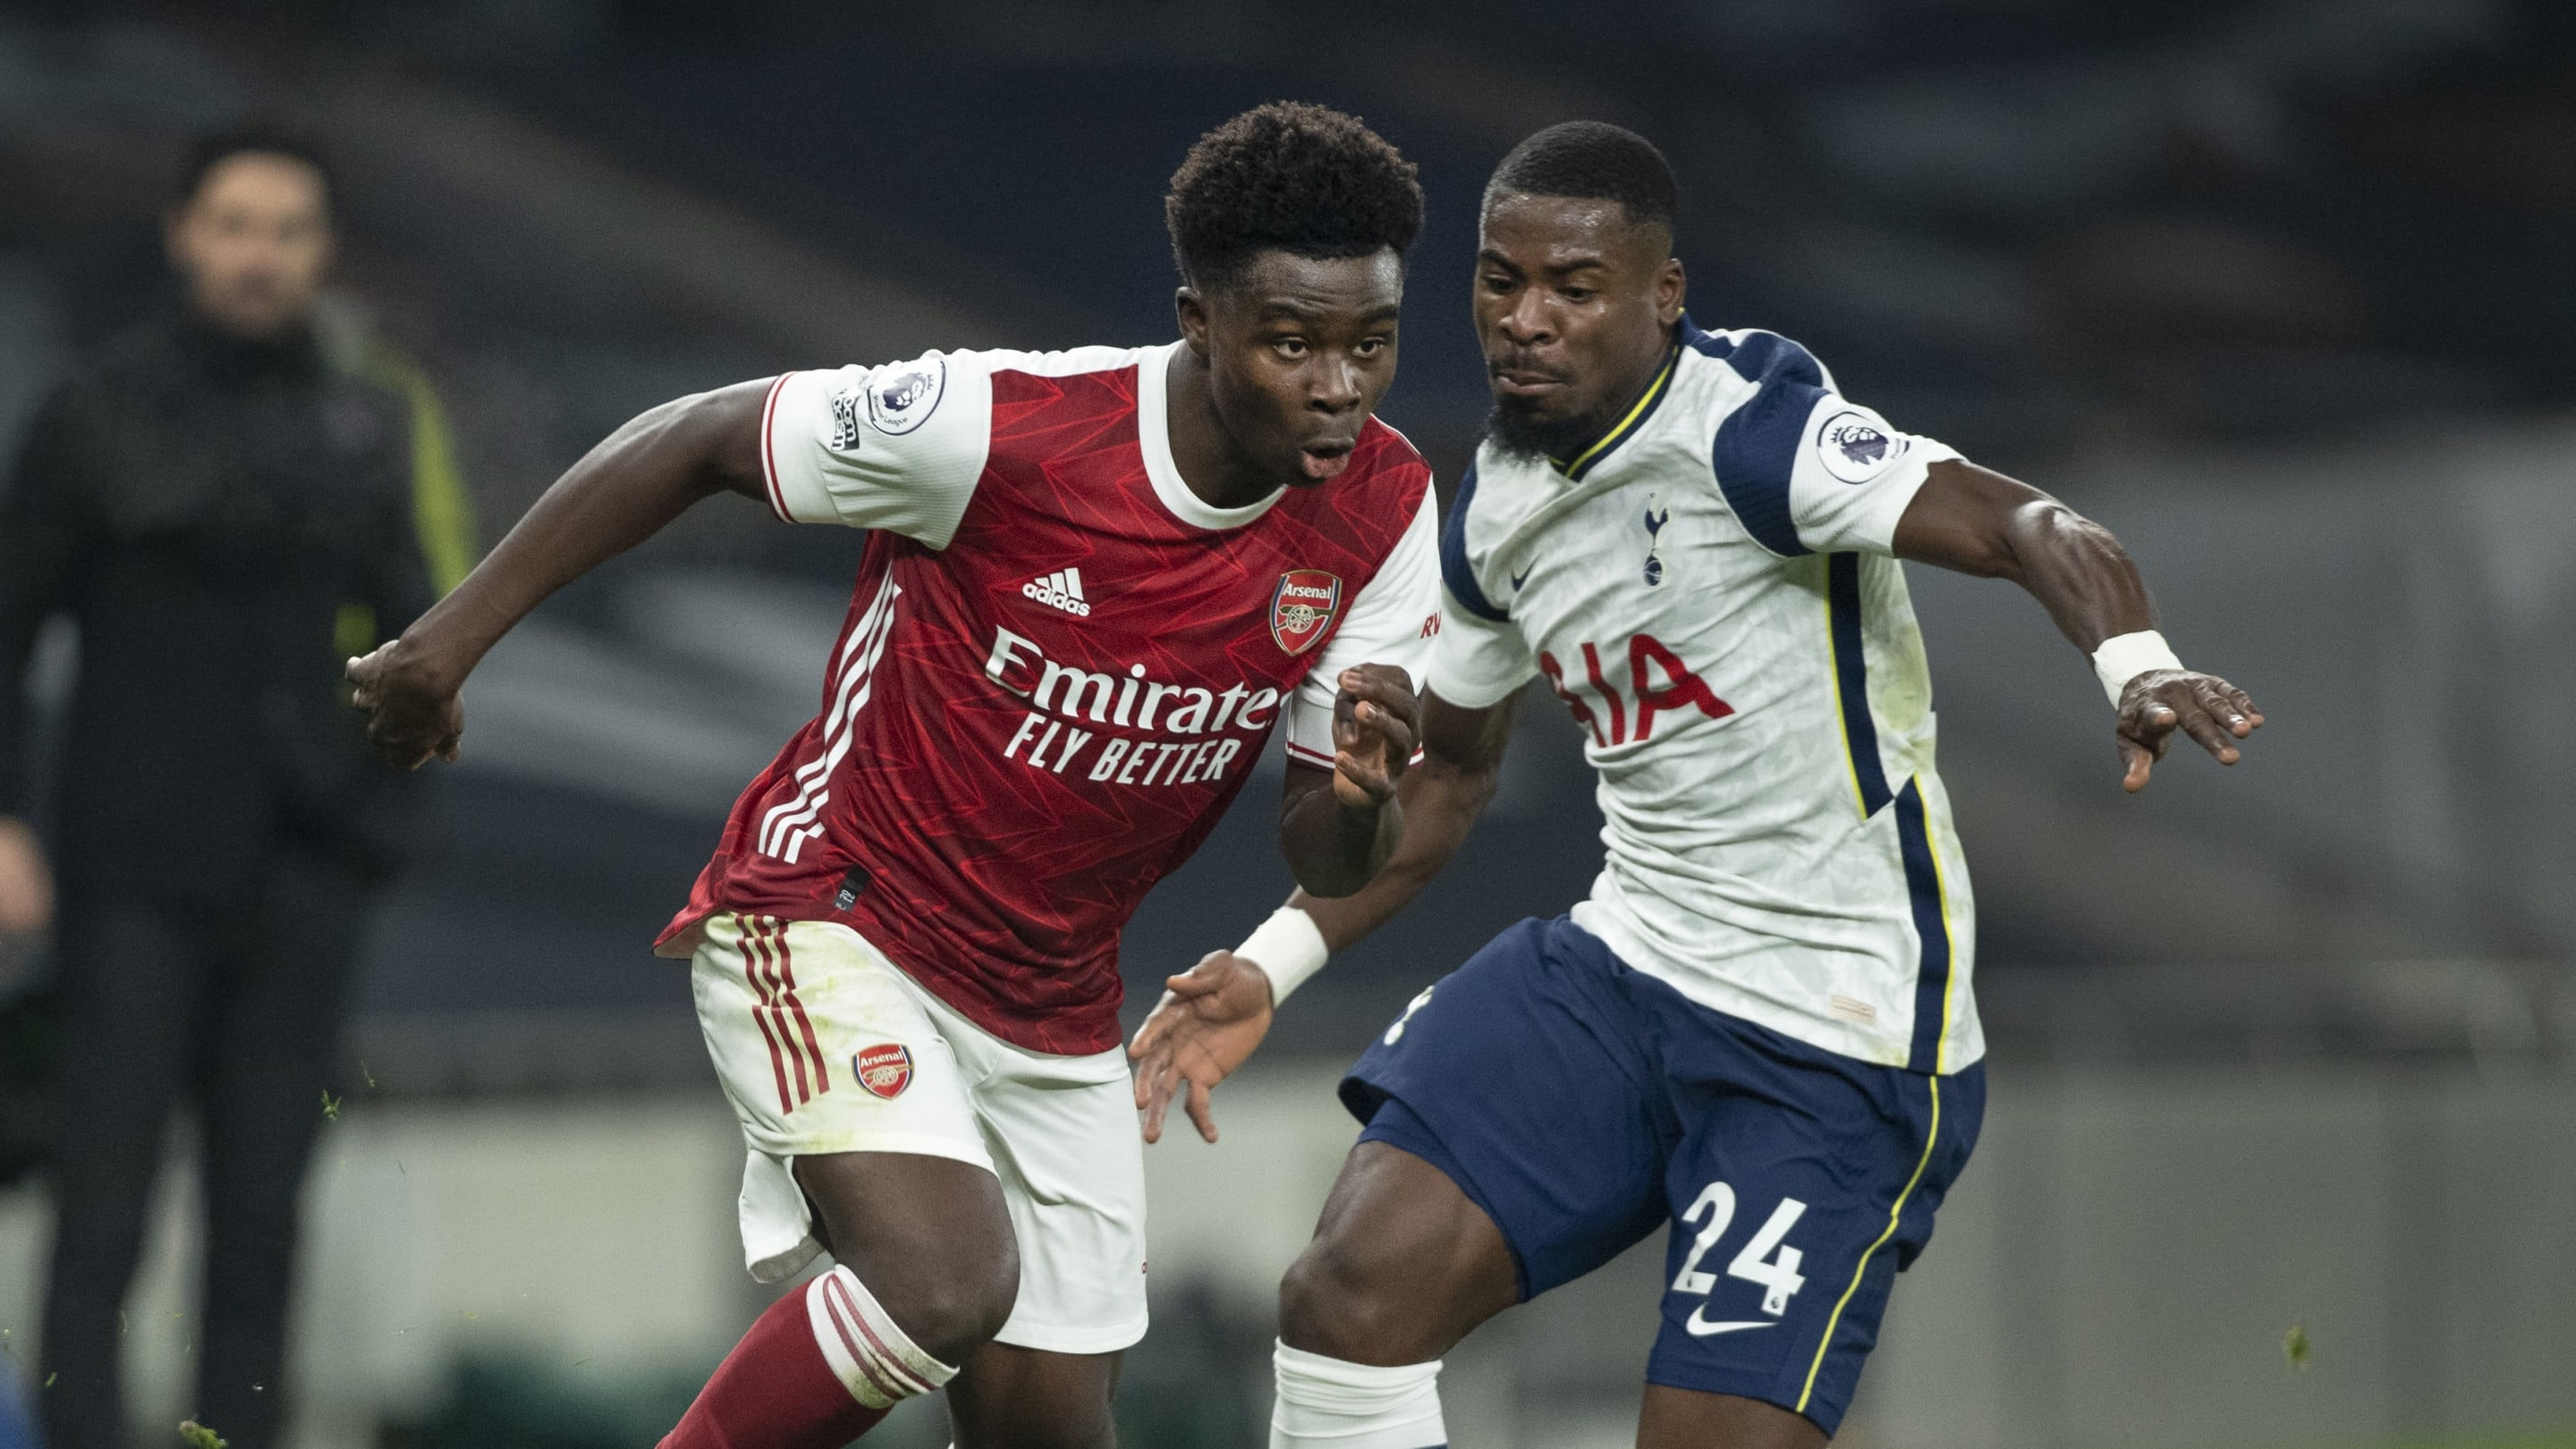 Arsenal vs Tottenham preview: How to watch on TV, live stream, team news and forecast thumbnail